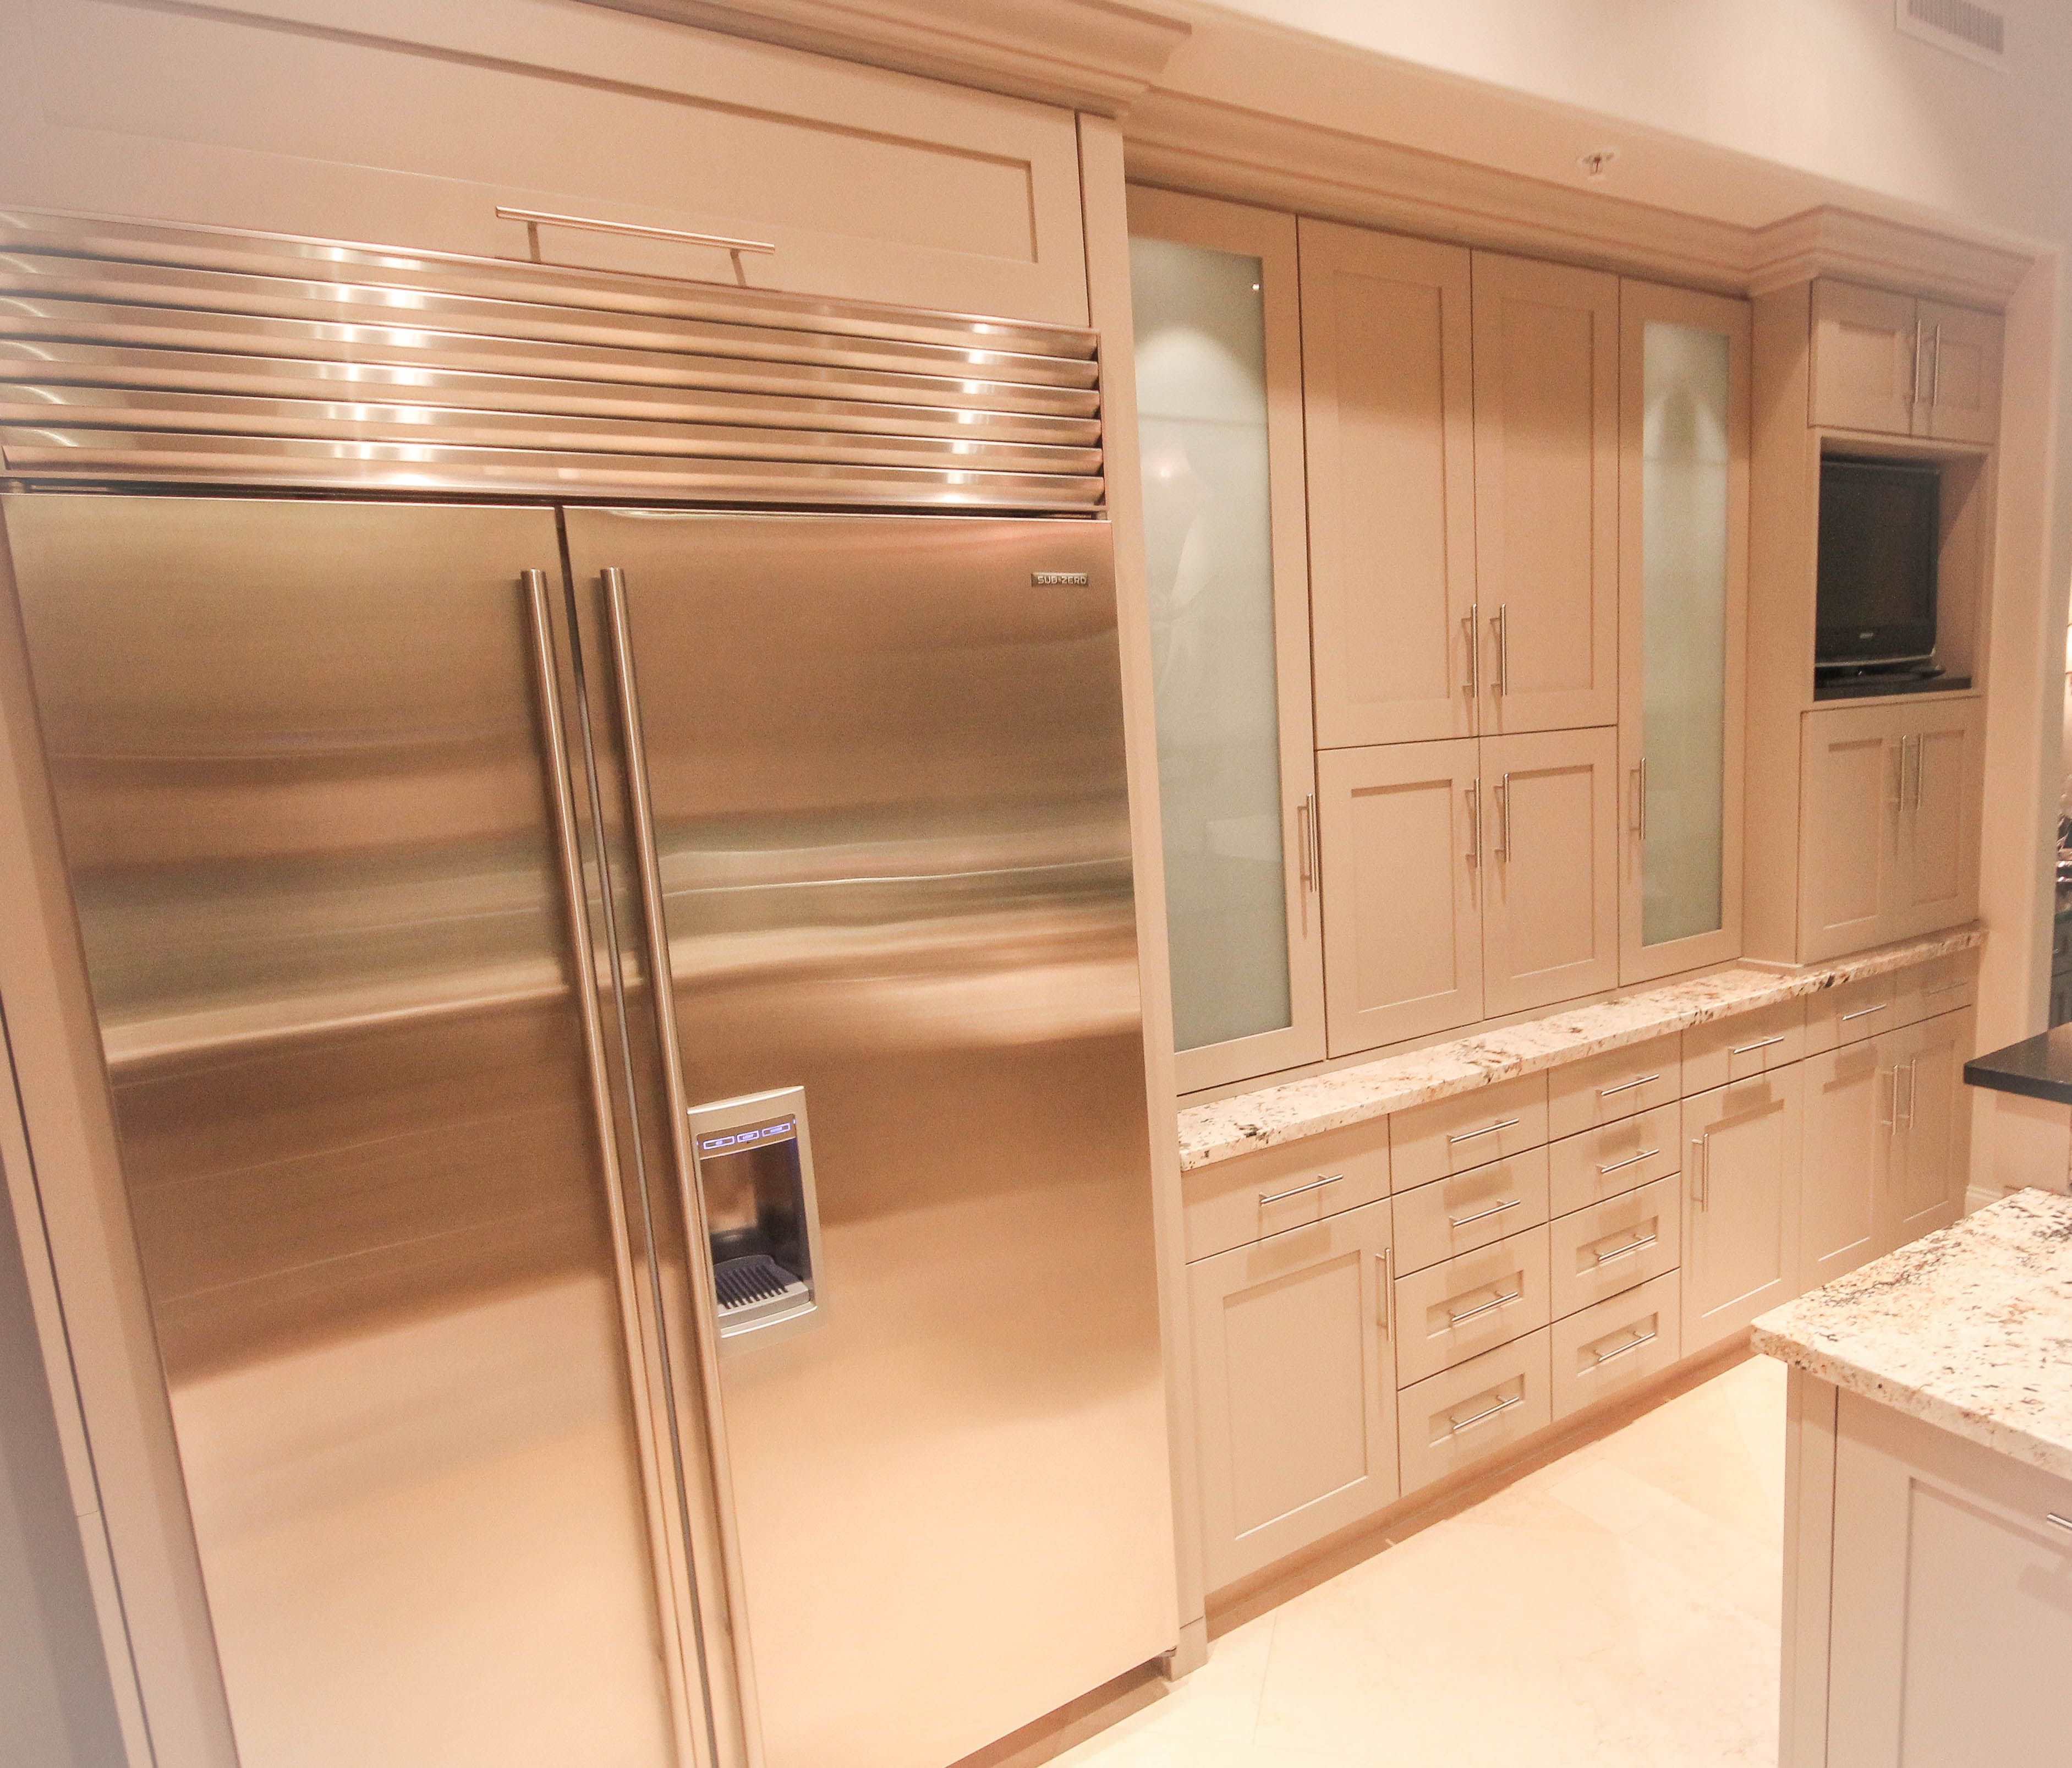 Kitchen Remodel #Transitional - Shaker Style Door Cabinets ...